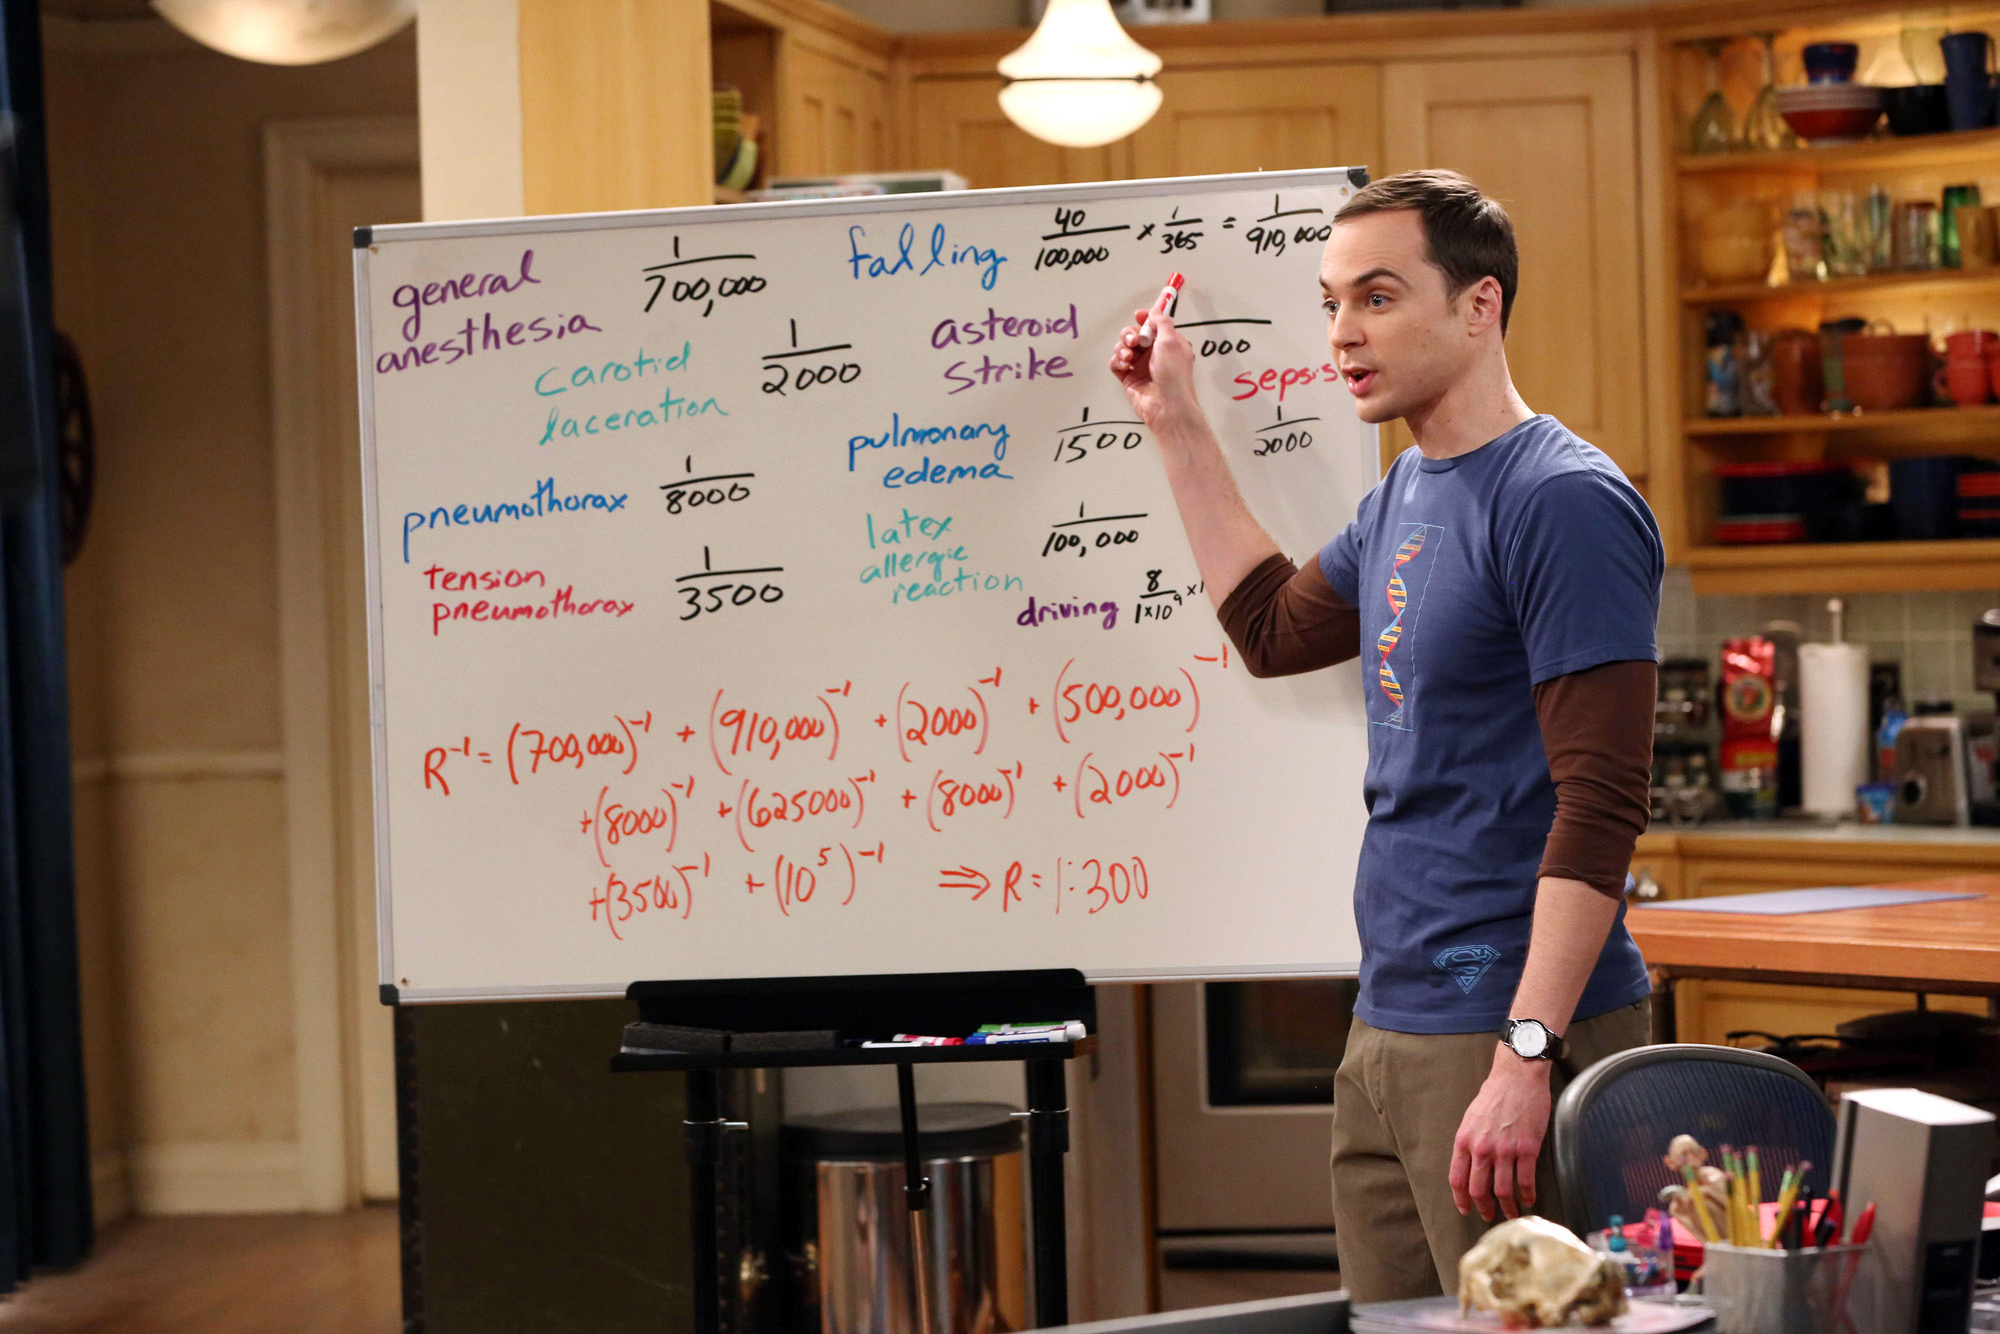 Sheldon tries to make a point